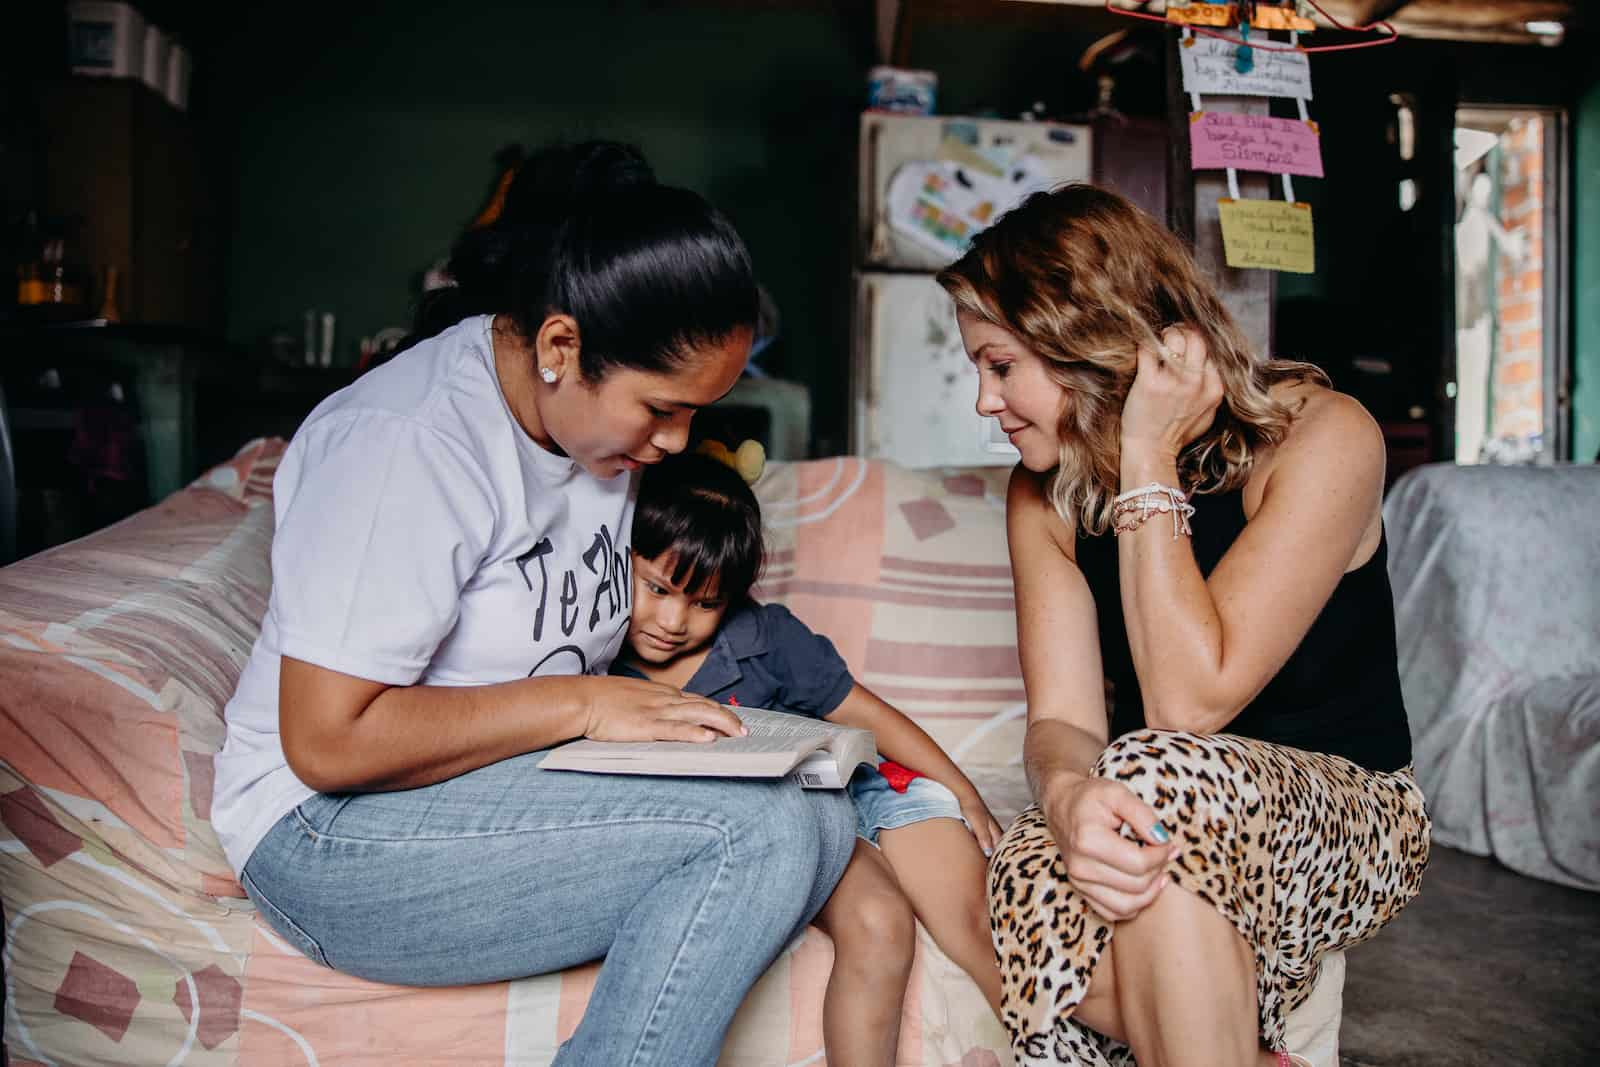 Two women and a girl read the Bible in a living room.